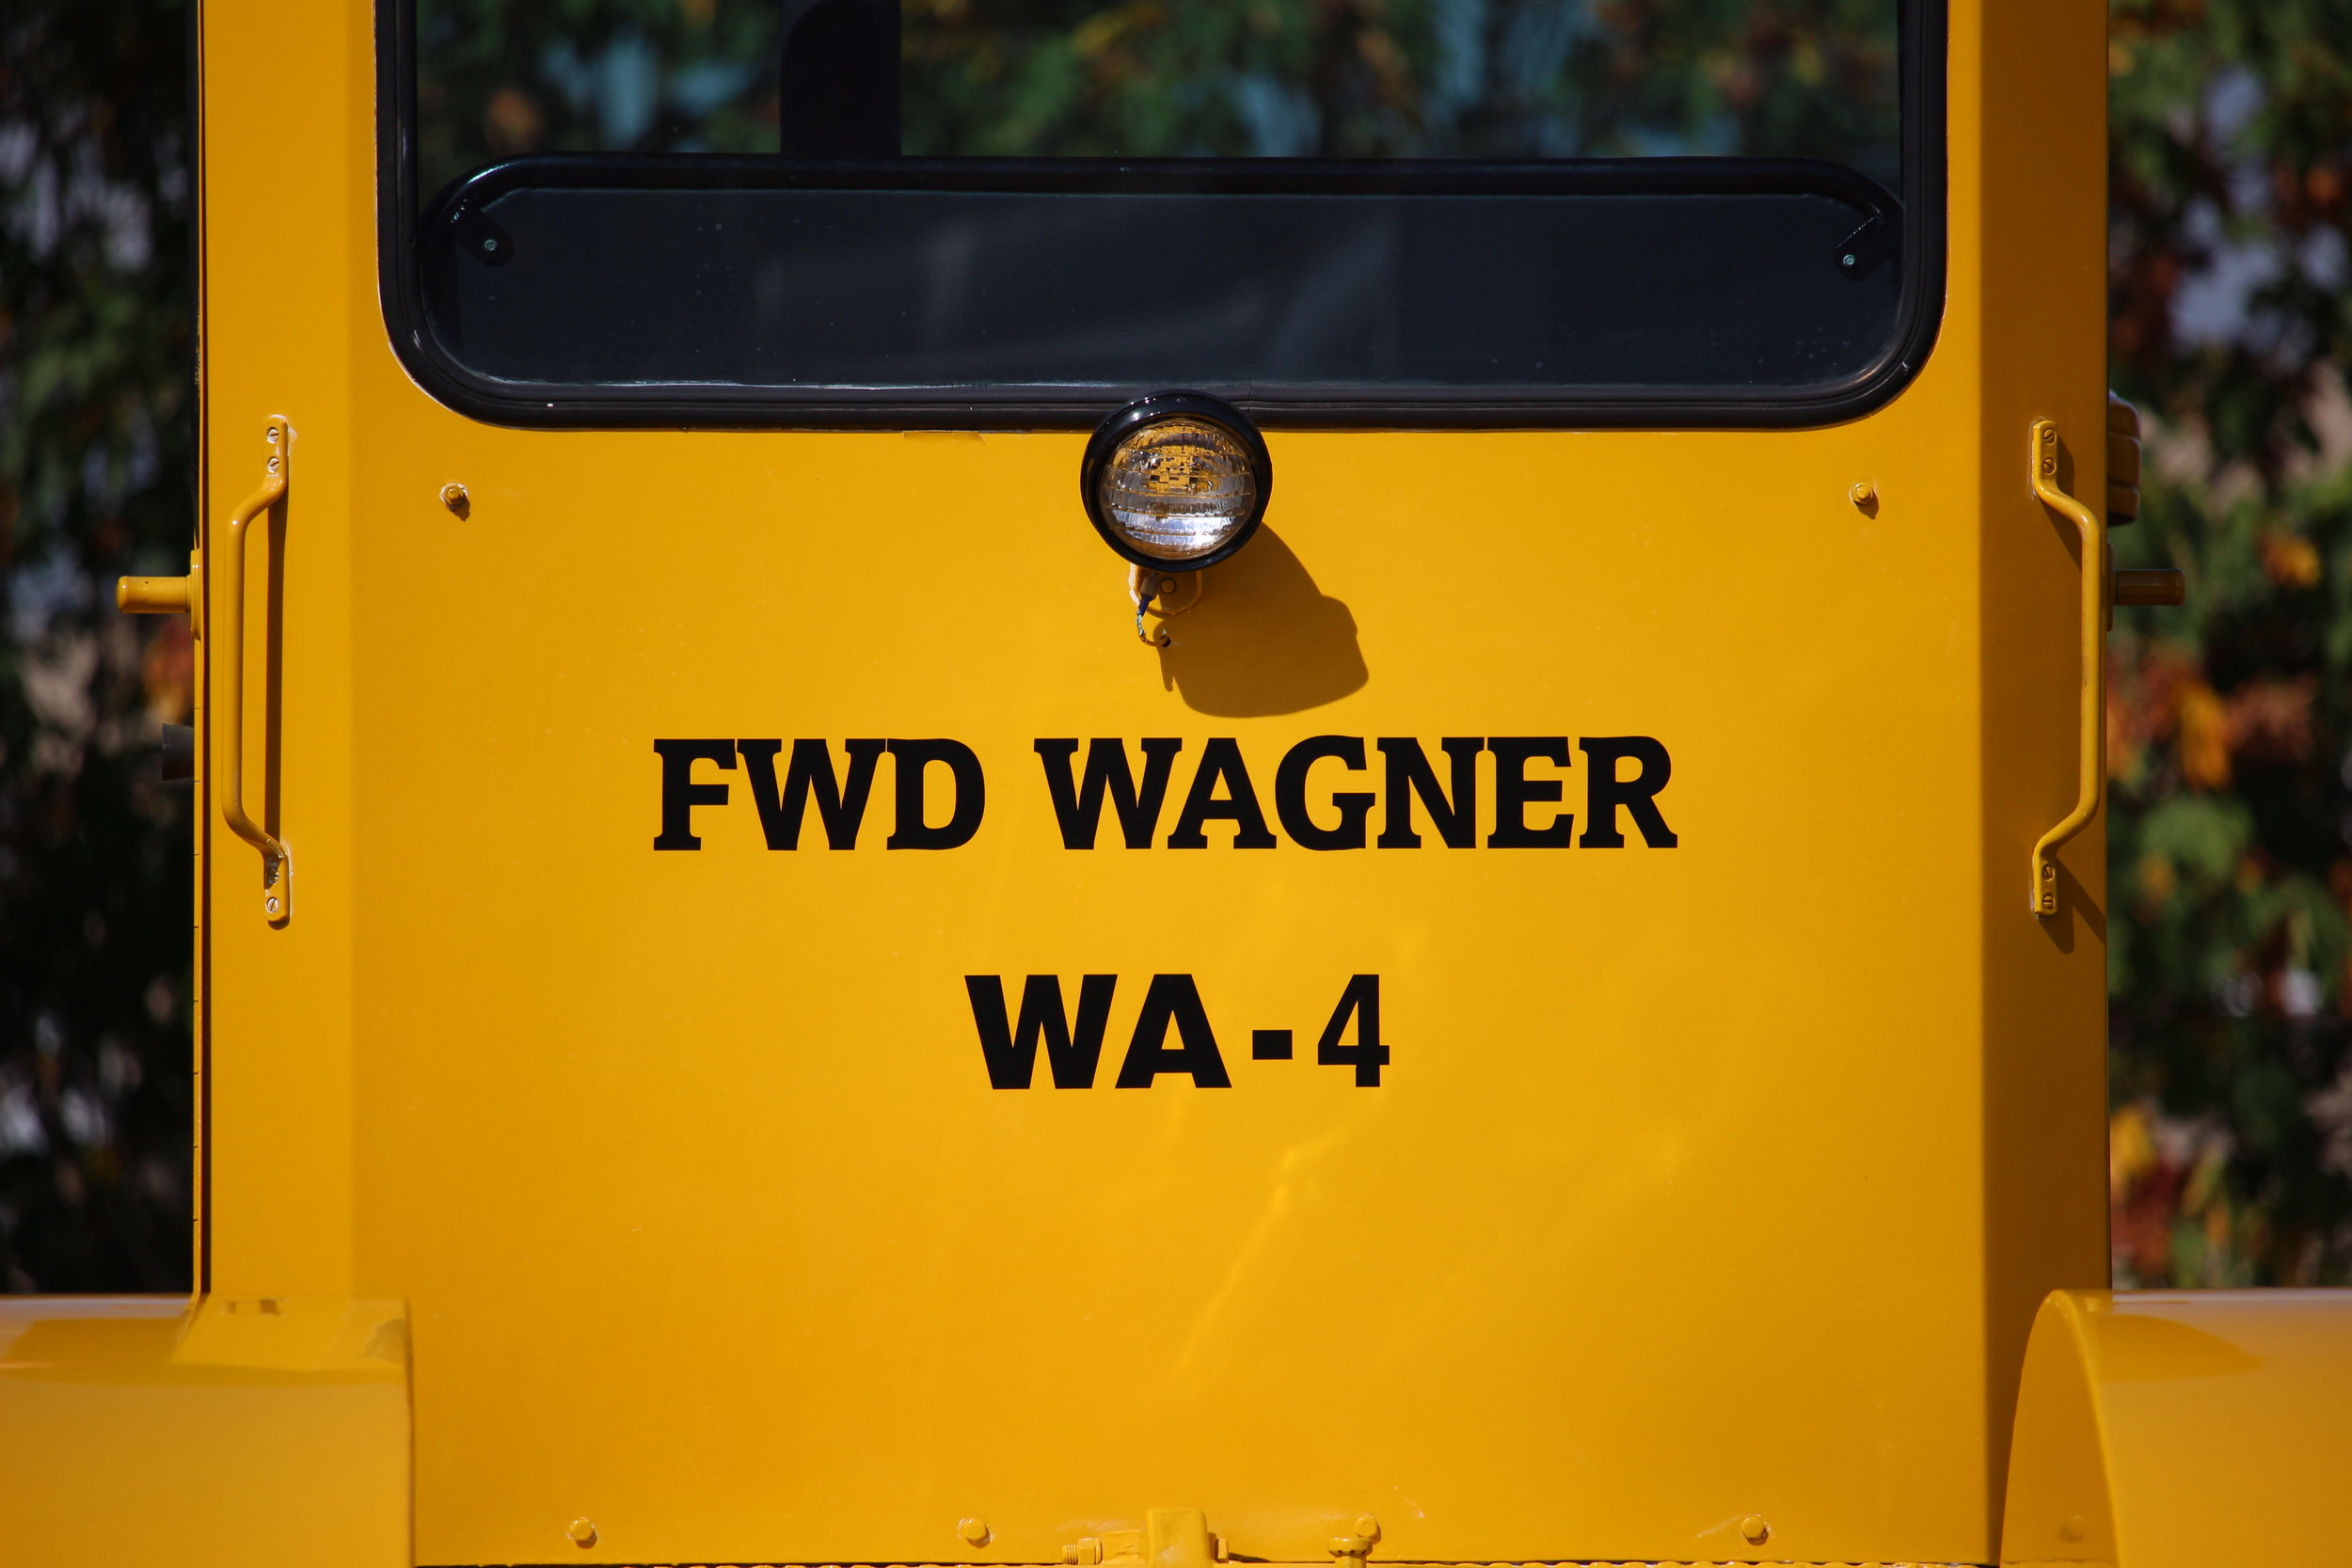 These vinyl decals look perfect on this rare Wagner tractor.